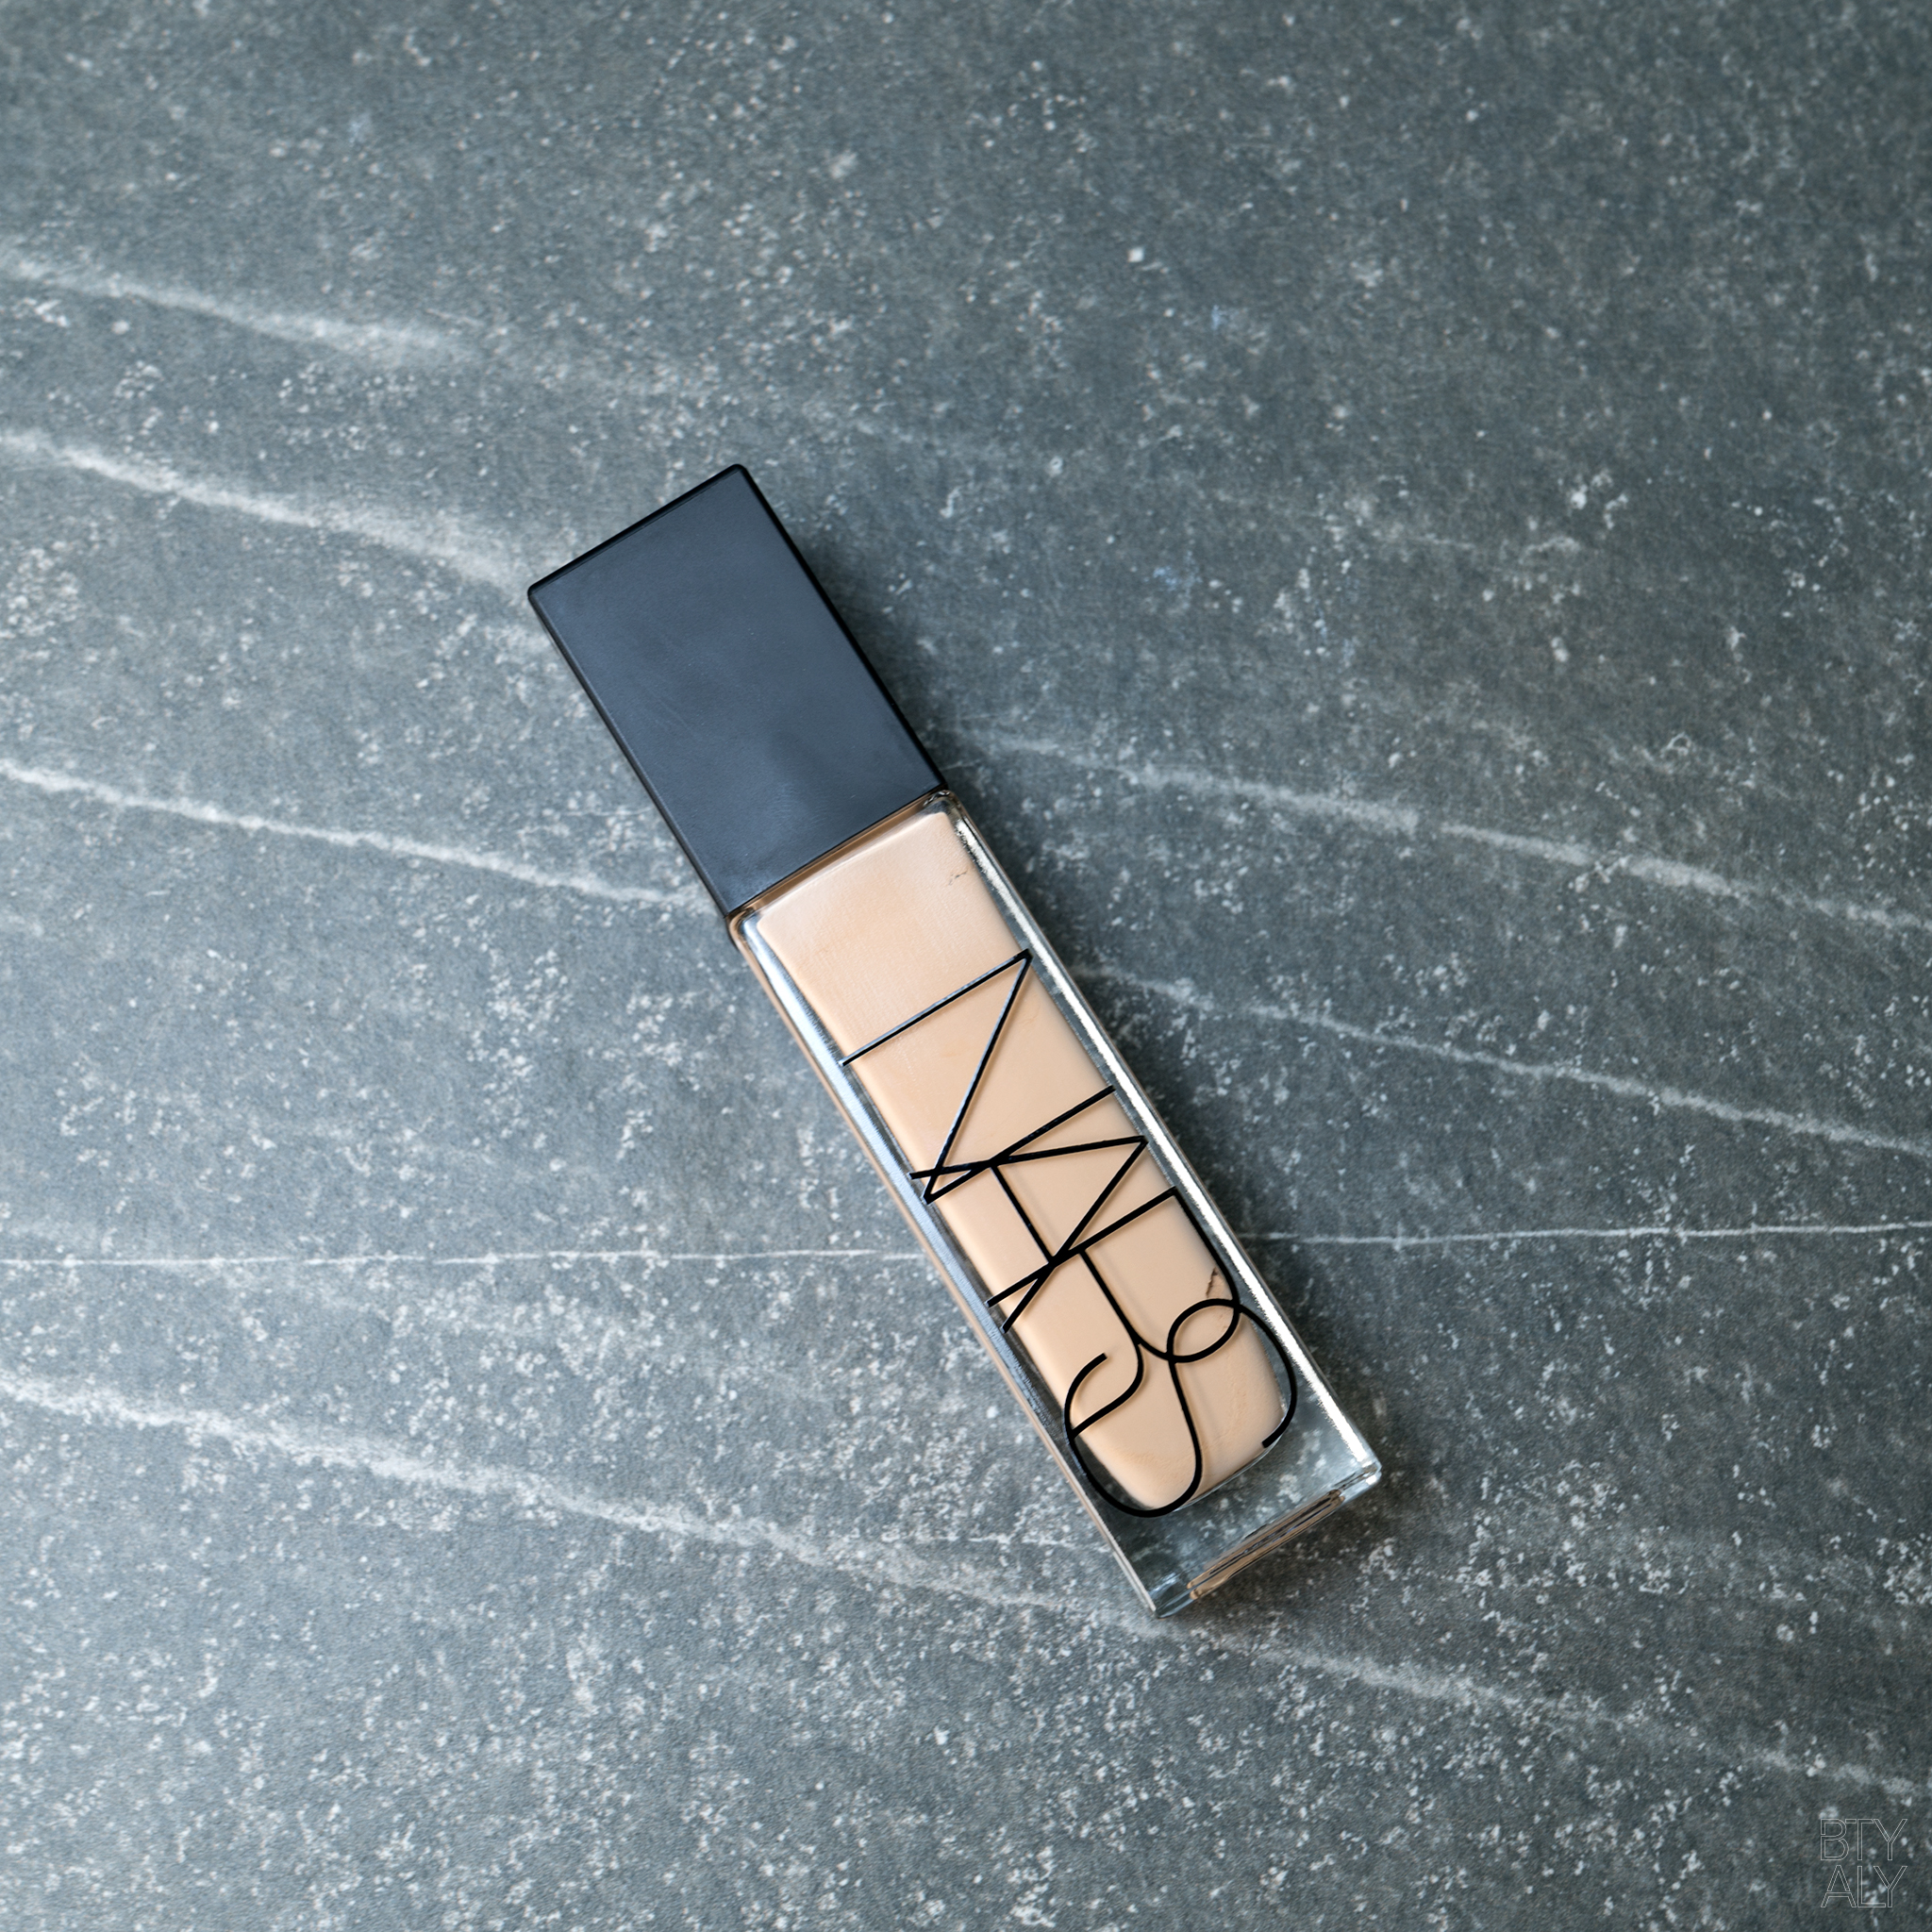 Nars Natural Radiant Longwear Foundation Deauville